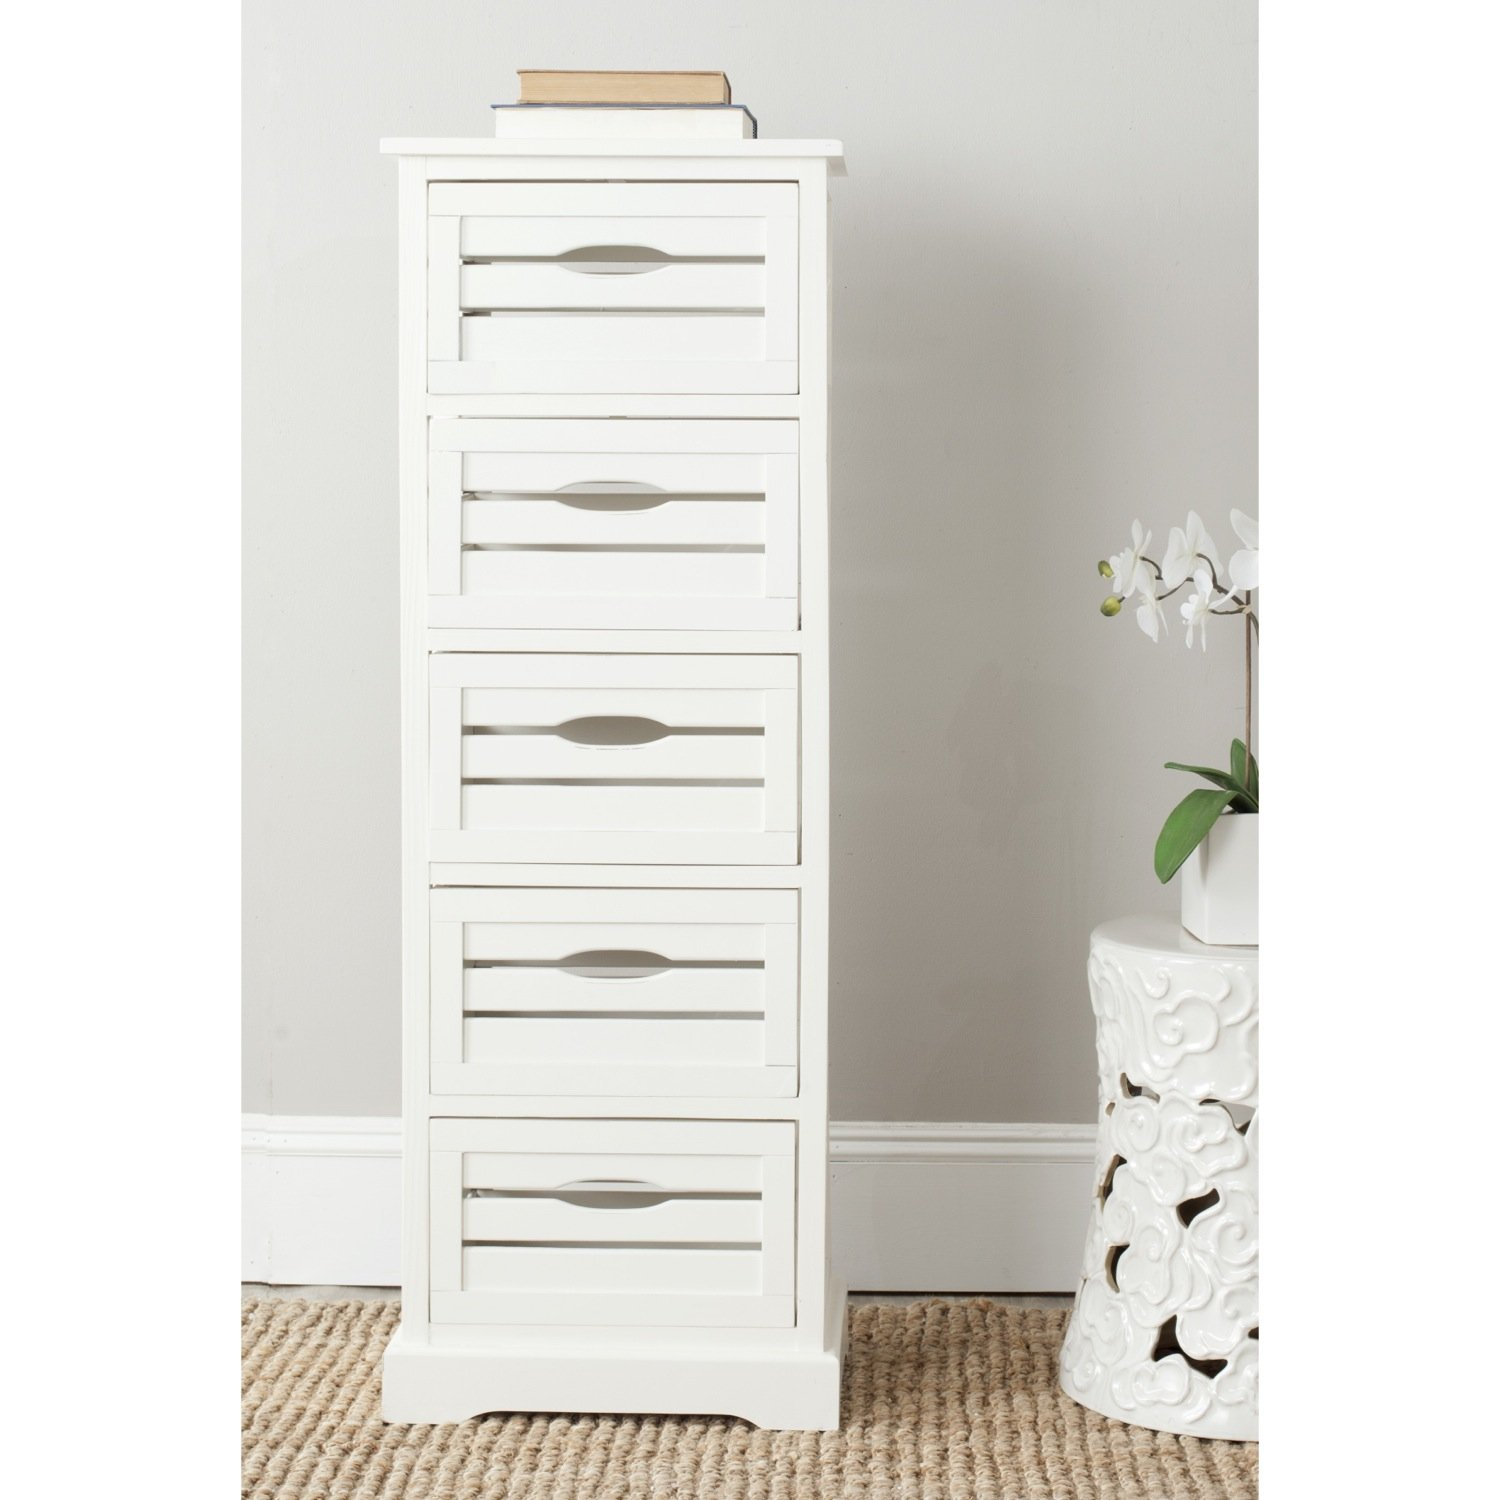 Safavieh American Homes Collection Sarina 5-Drawer Cabinet, Distressed Cream